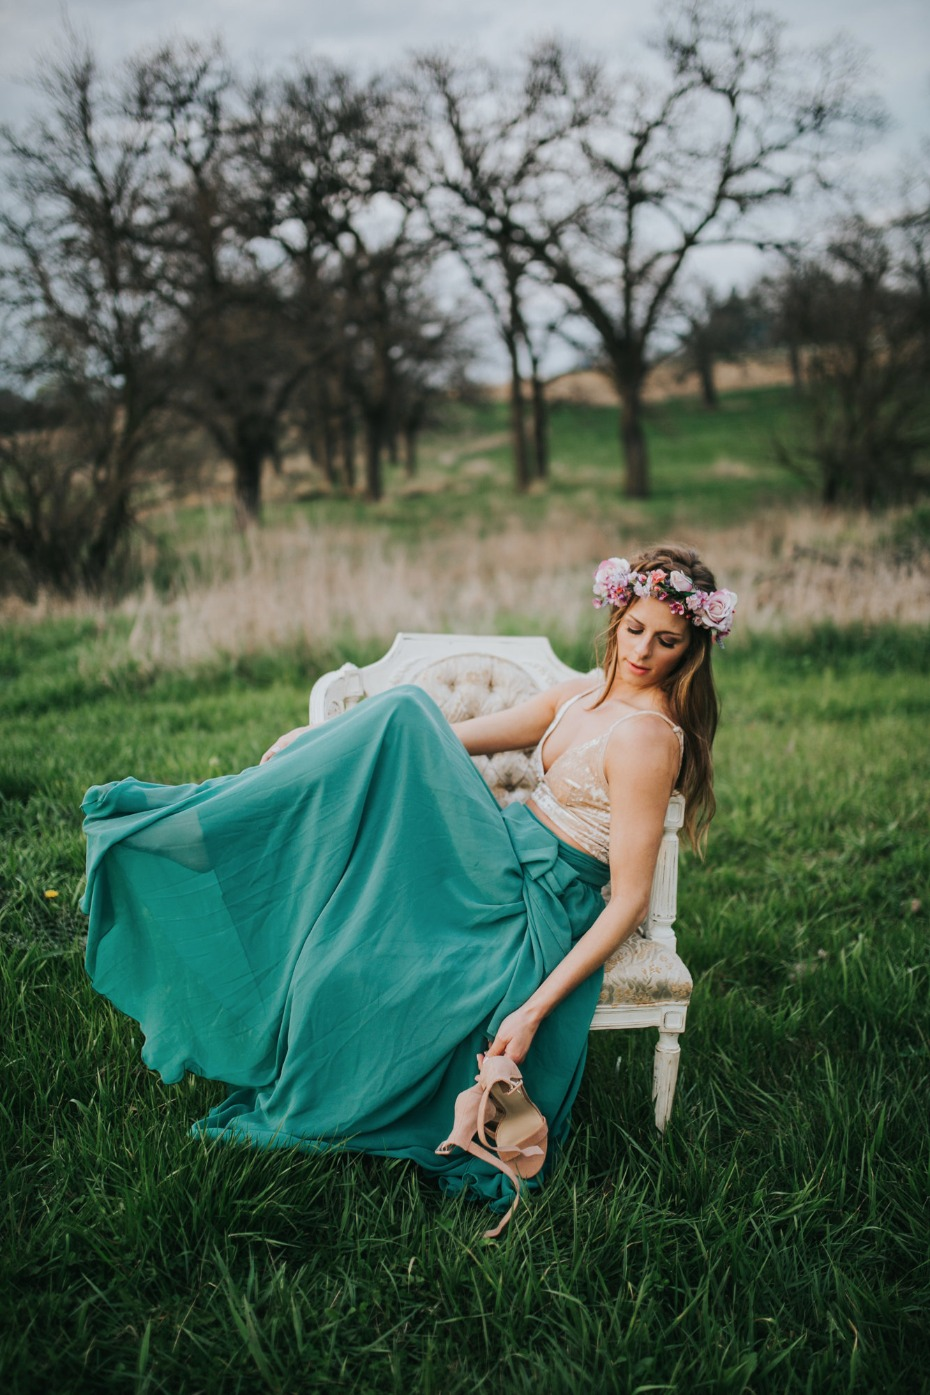 Beautiful look for the bride-to-be